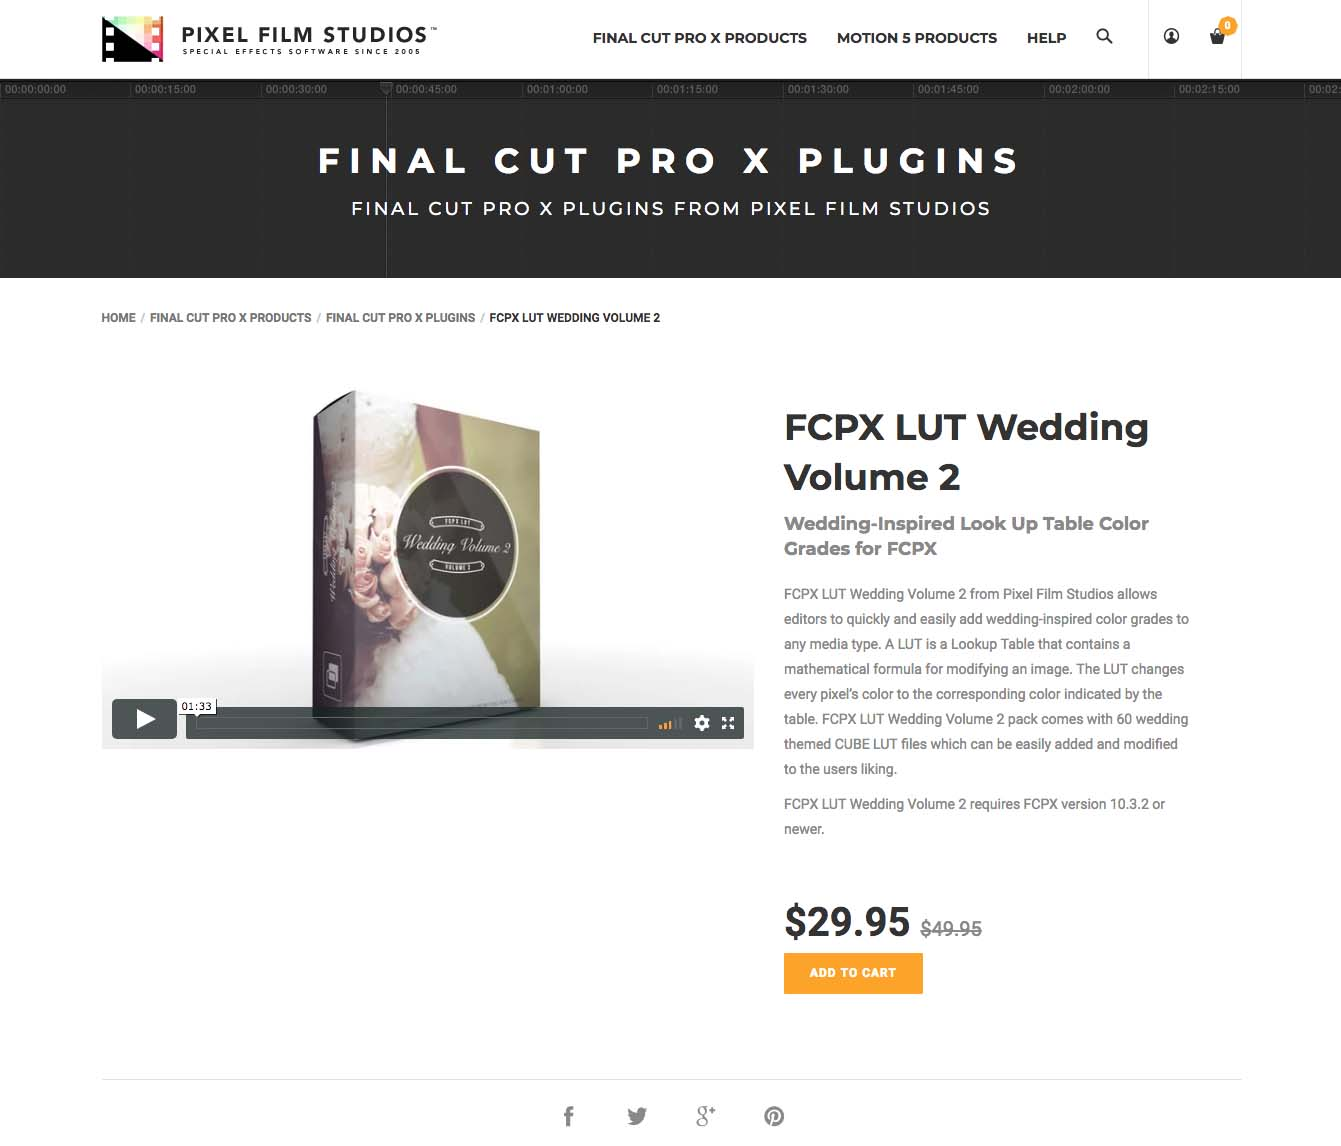 Developers at pixel film studios release fcpx lut wedding for Final cut pro wedding templates